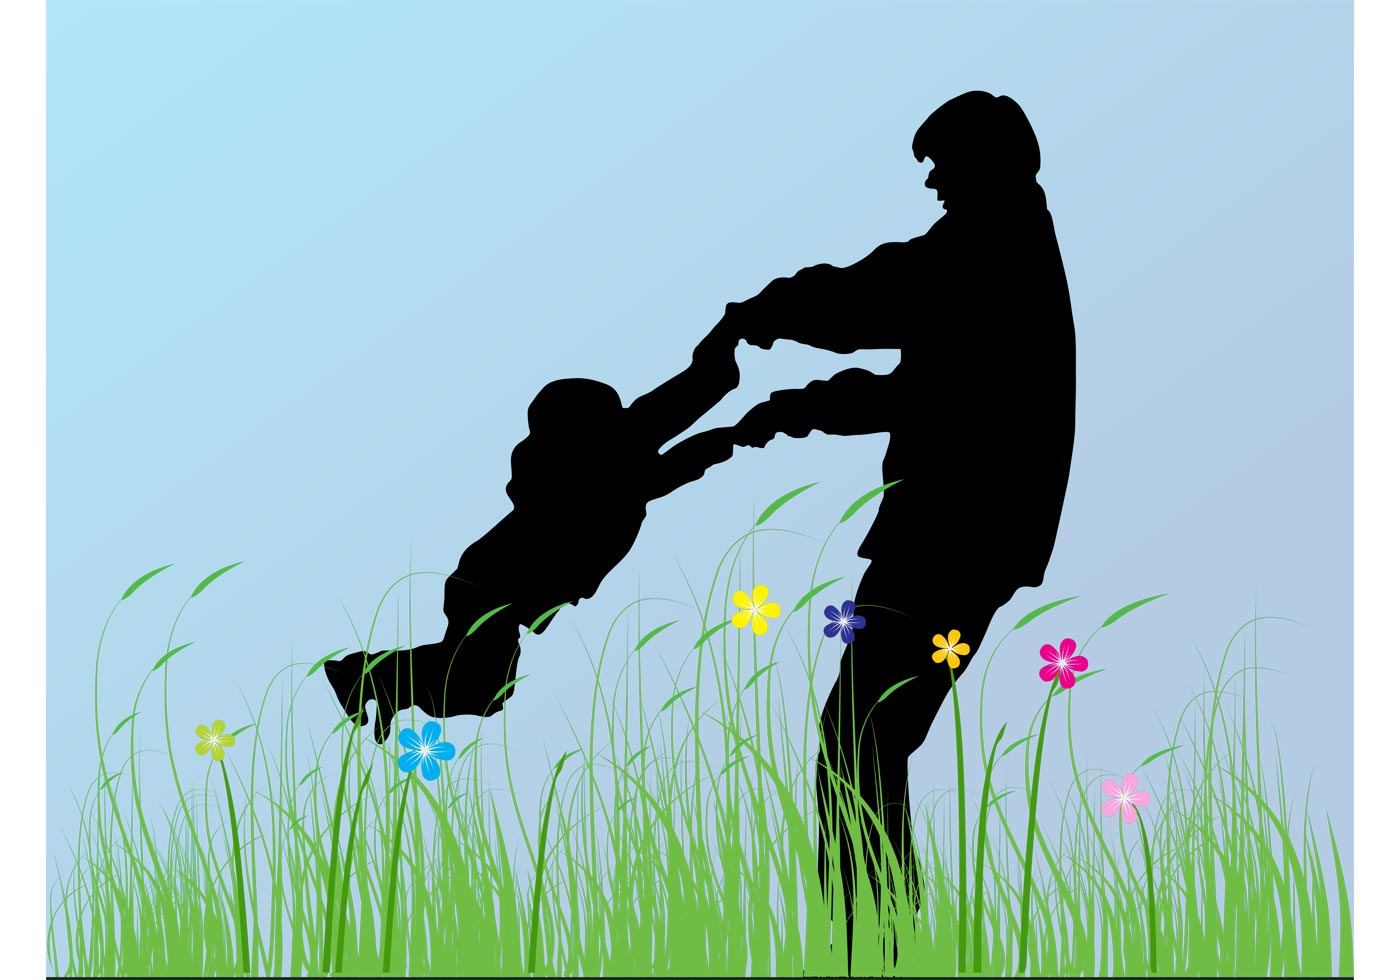 Father And Child - Download Free Vector Art, Stock ...